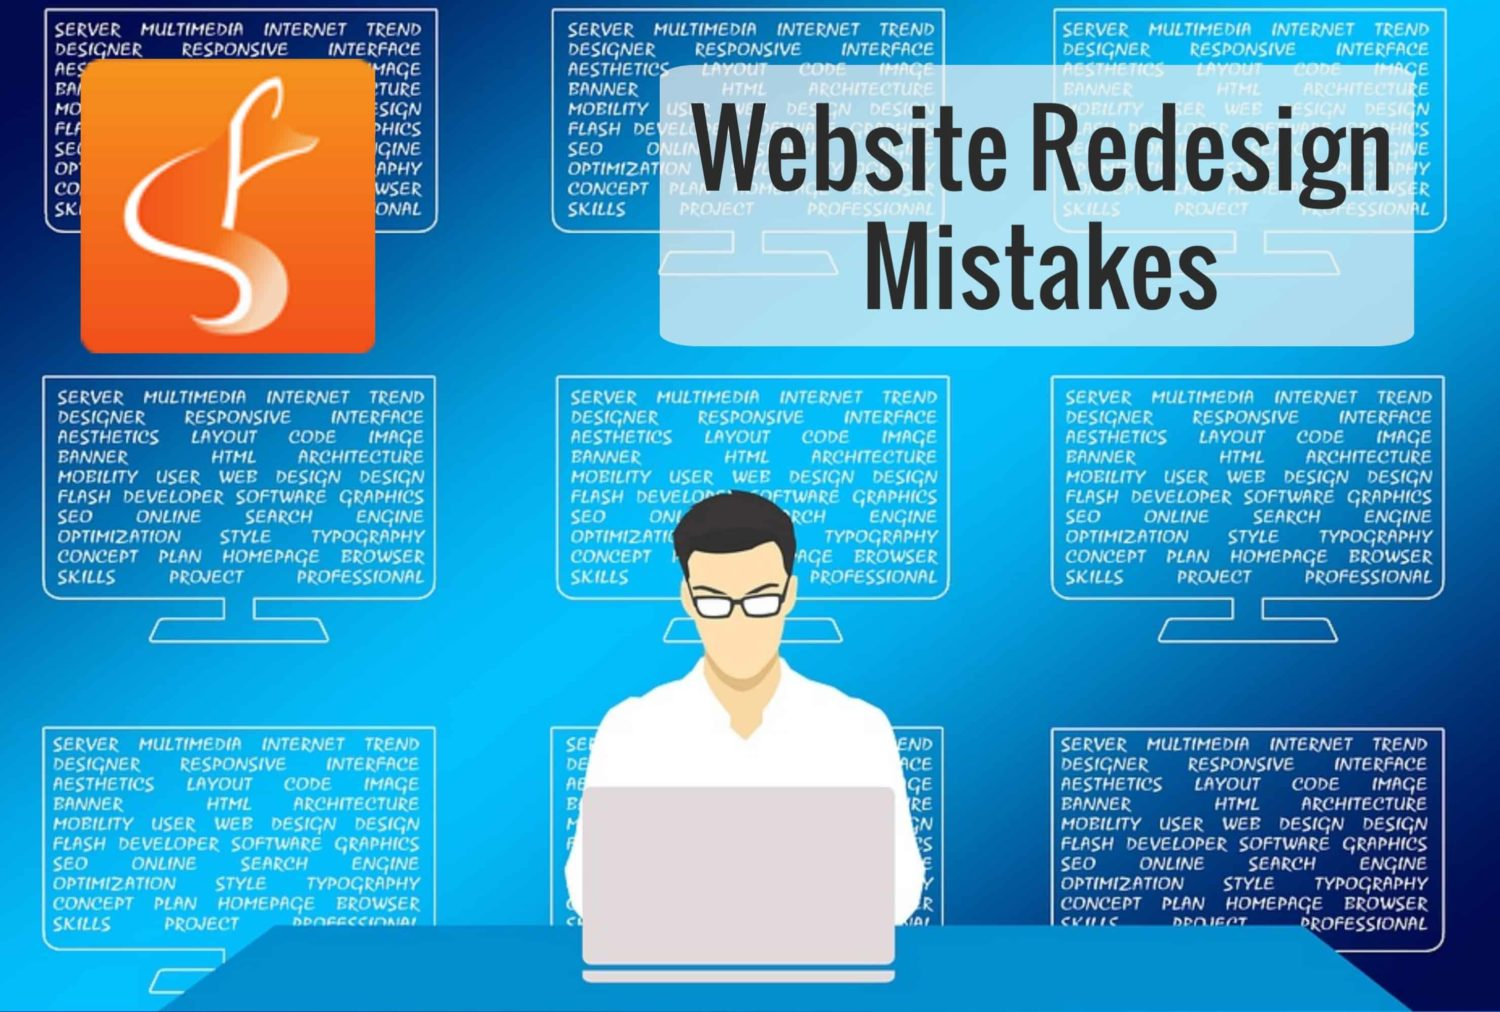 Common Website Redesign Mistakes